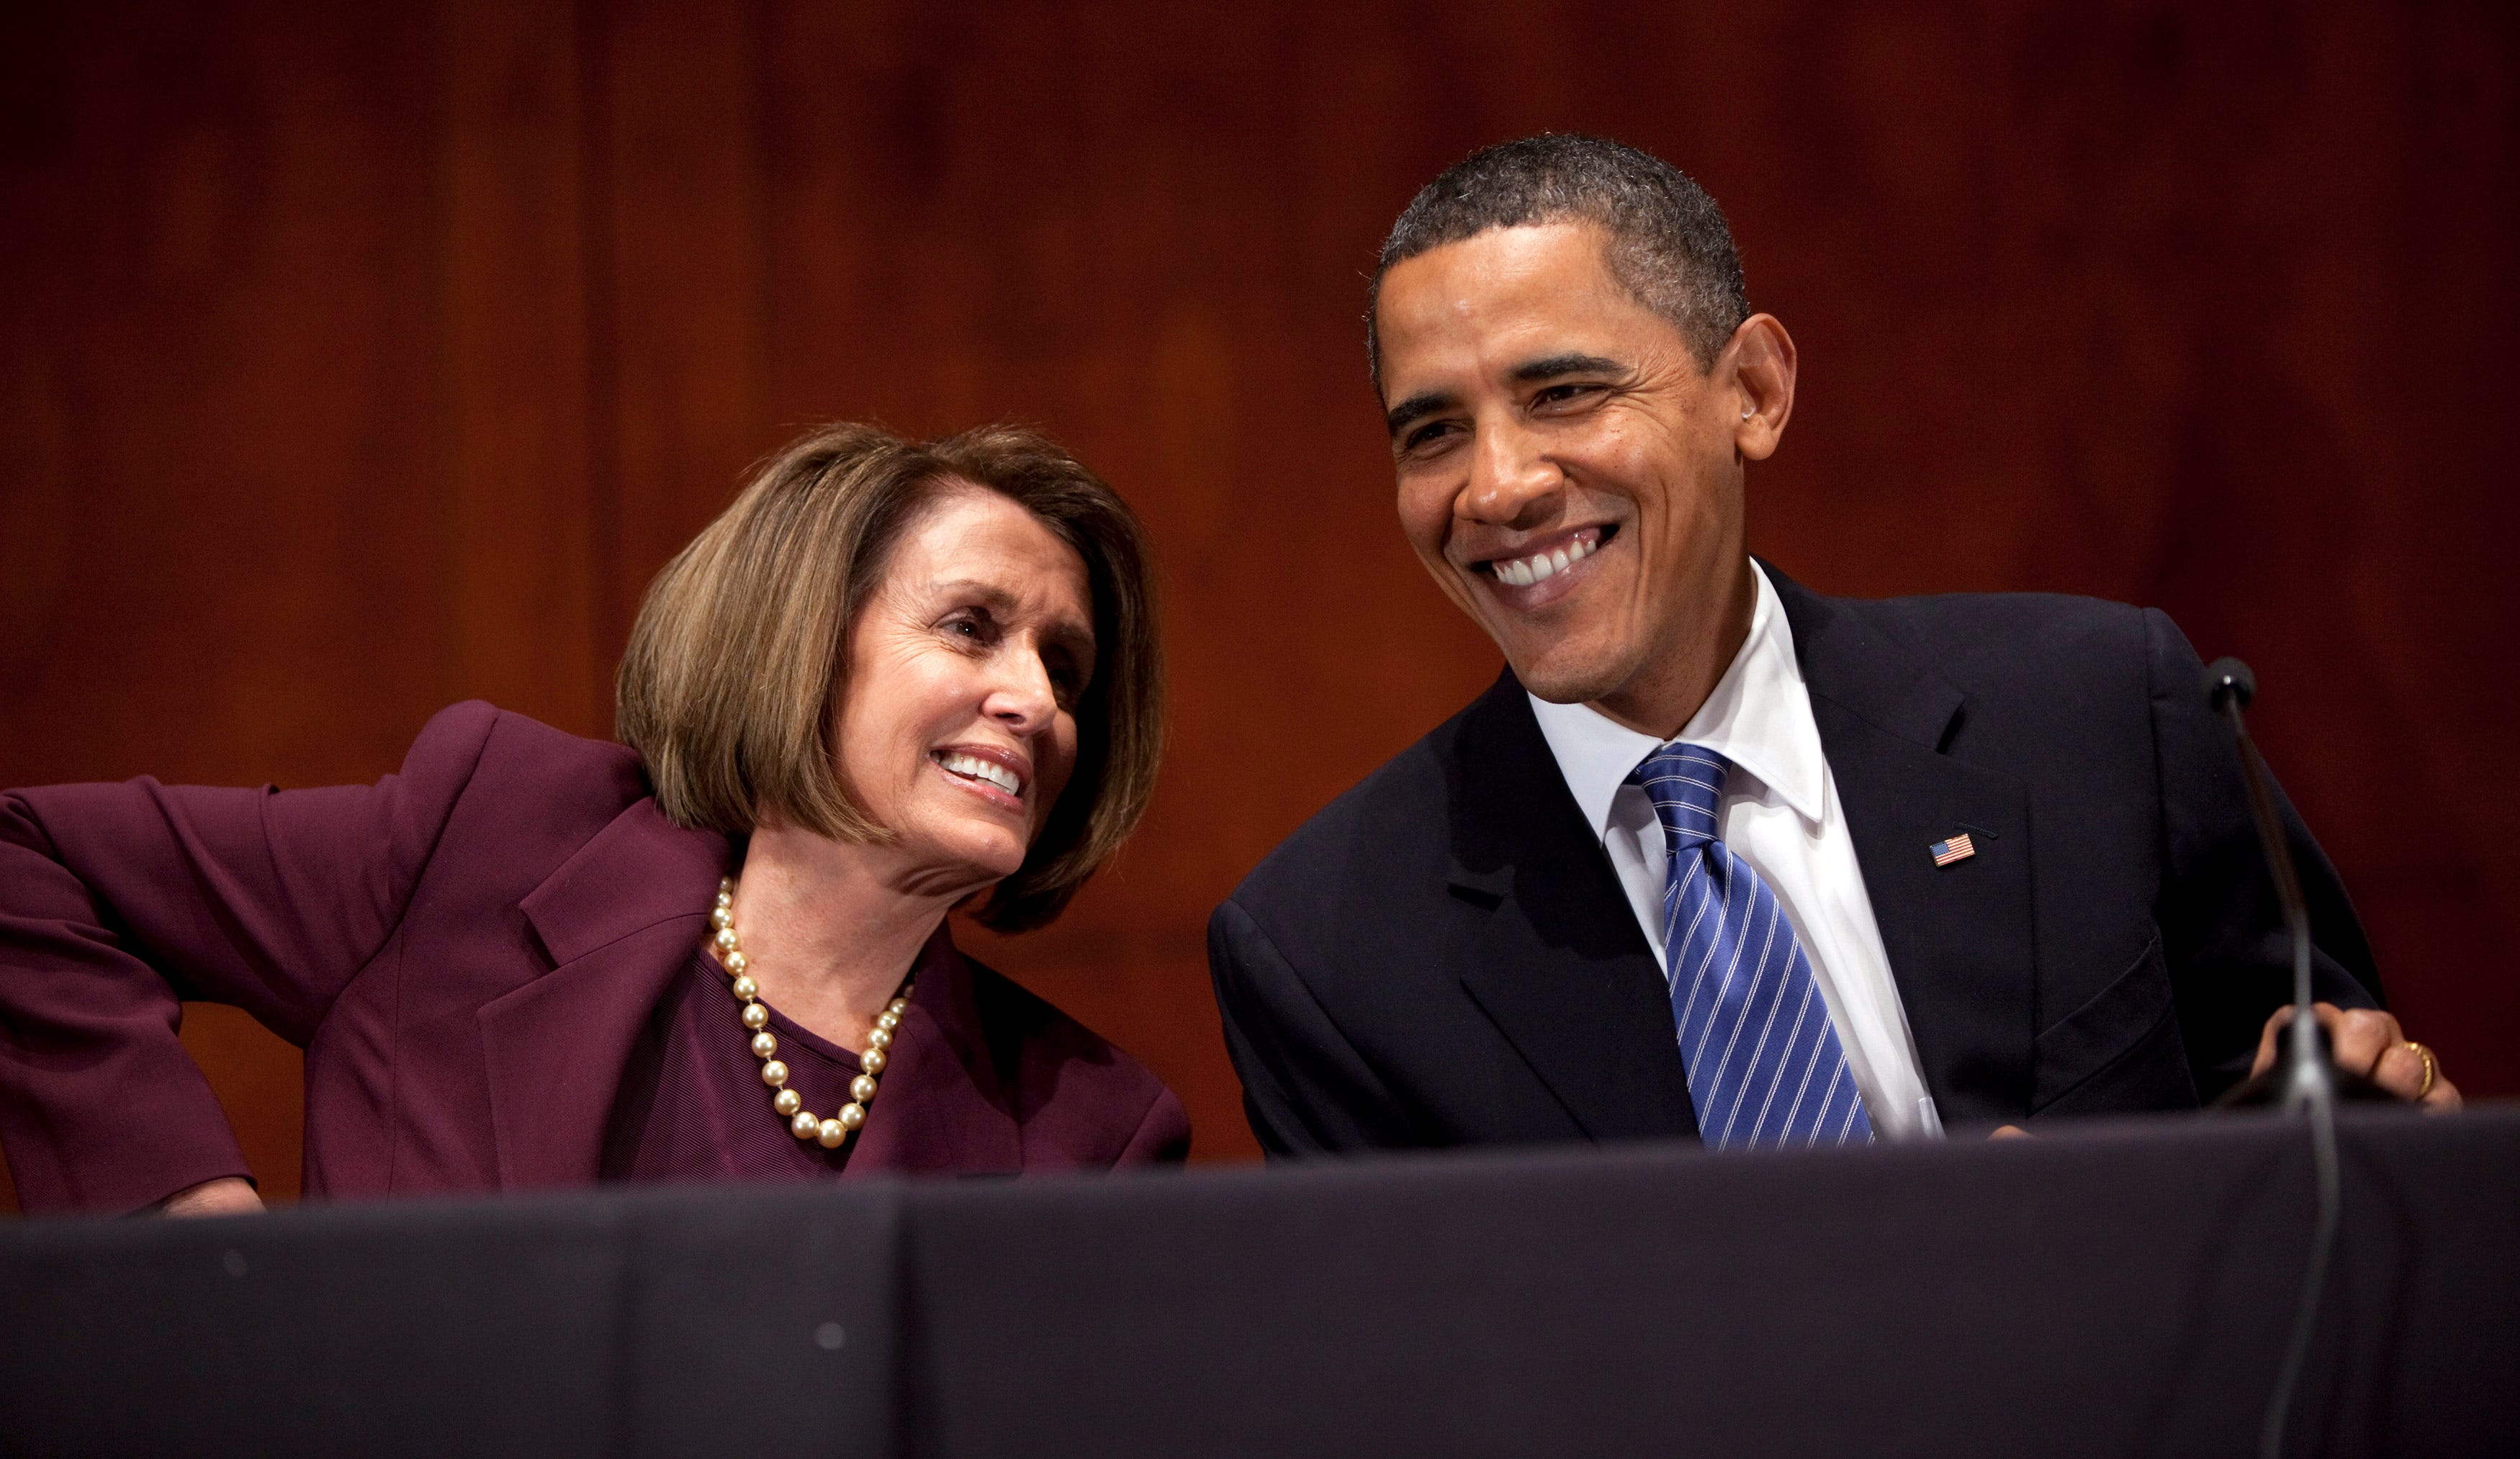 President Barack Obama, right, talks with House Speaker Nancy Pelosi, D-Calif., during the House Democratic Caucus retreat at the U.S. Capitol on Thursday, Jan. 14, 2010, in Washington.